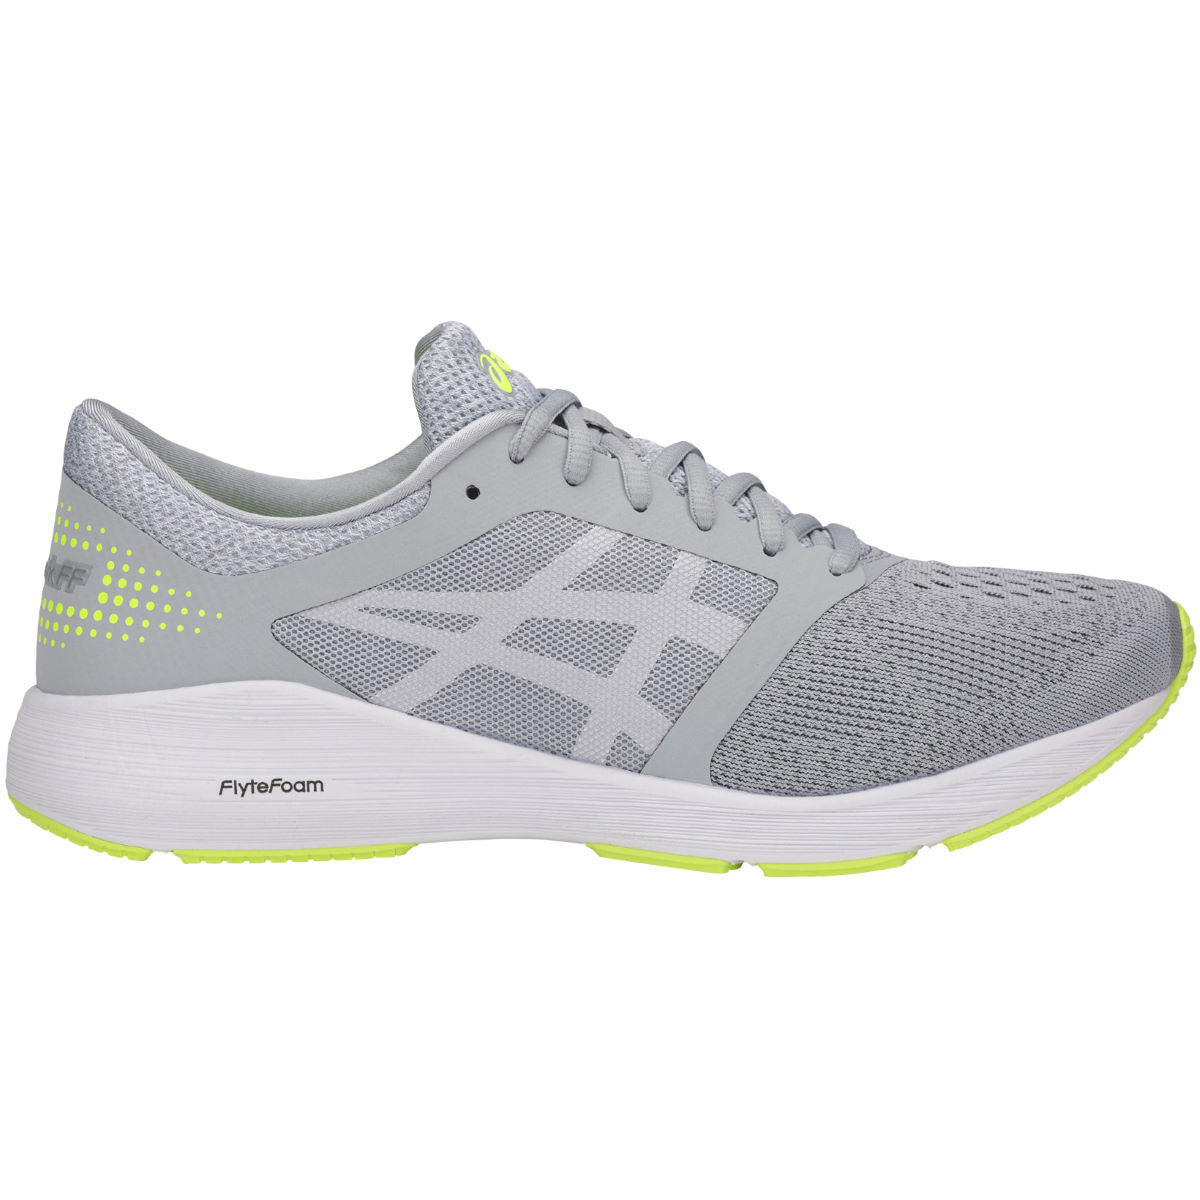 Chaussures Asics Roadhawk FF - UK 11 MID GREY/WHITE/SAFET